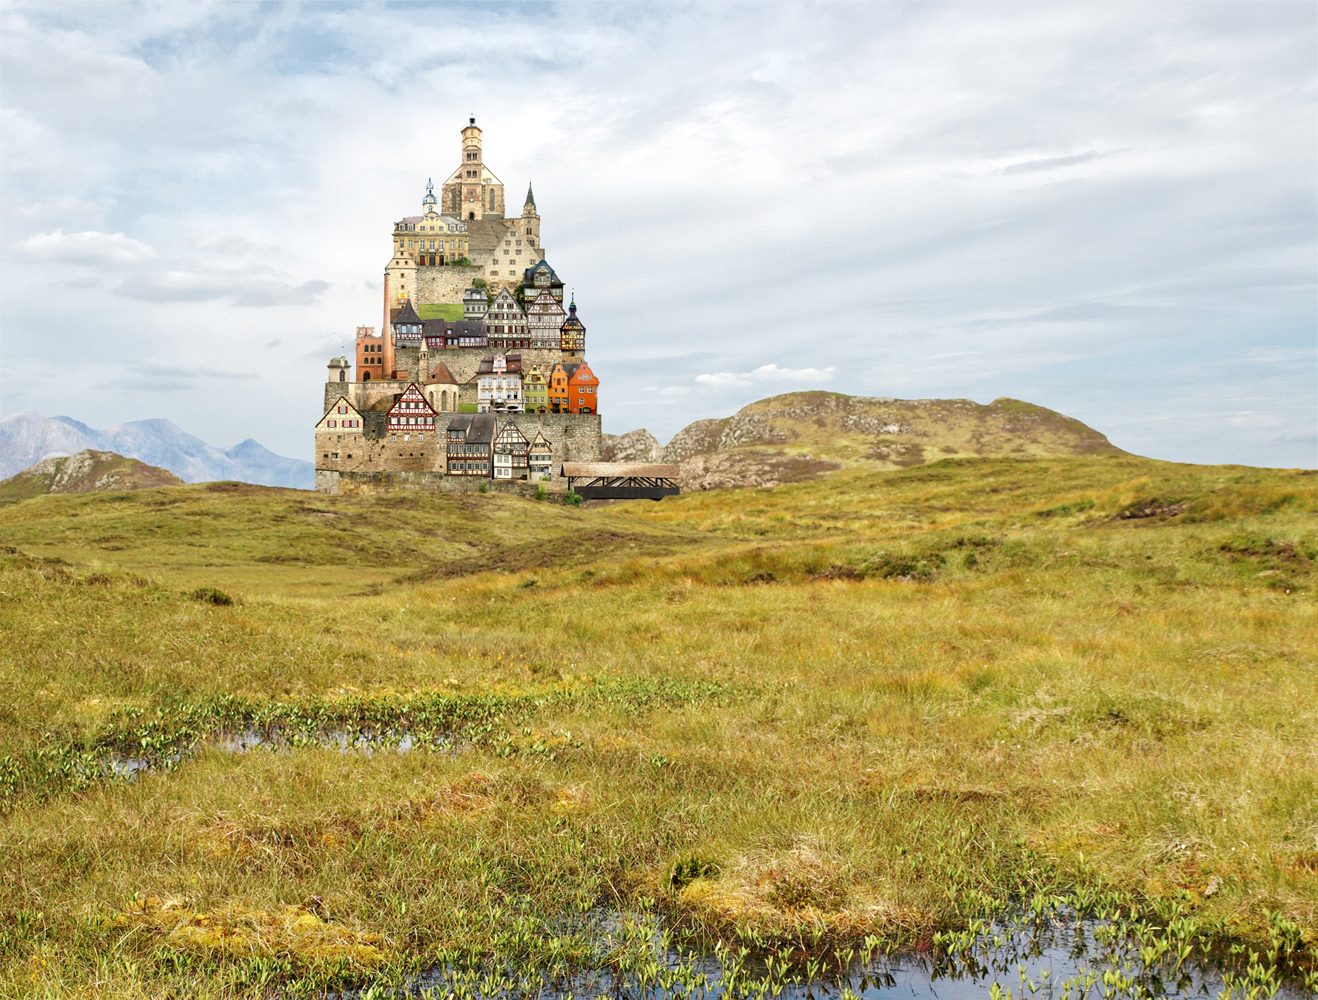 matthias-jung-surreal-homes-collages.jpg